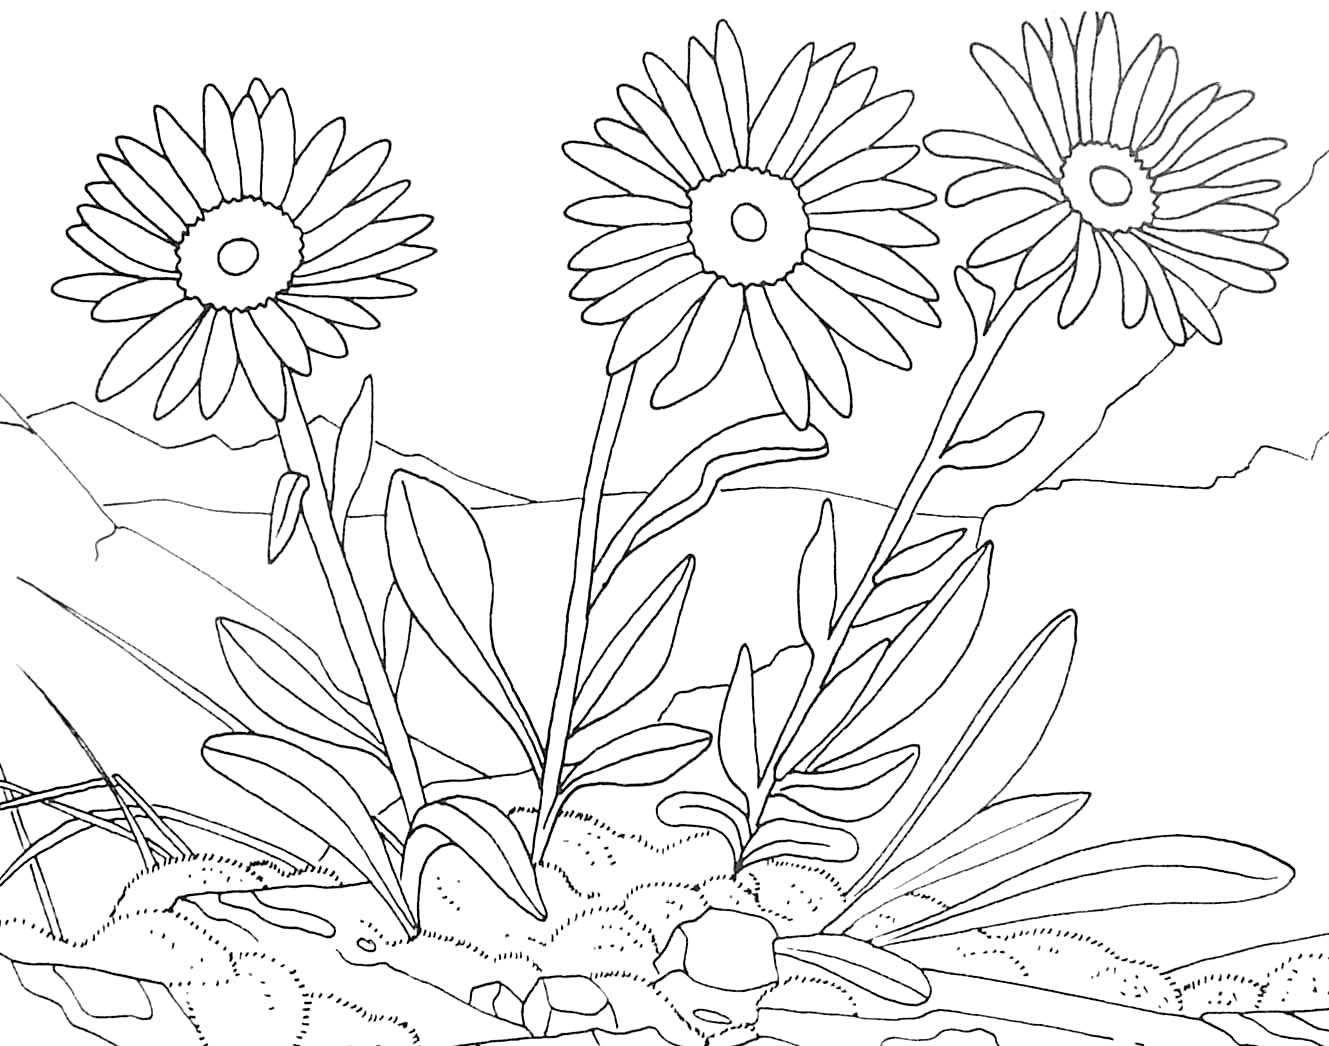 fleurs 6 coloriage de fleurs coloriages pour enfants. Black Bedroom Furniture Sets. Home Design Ideas